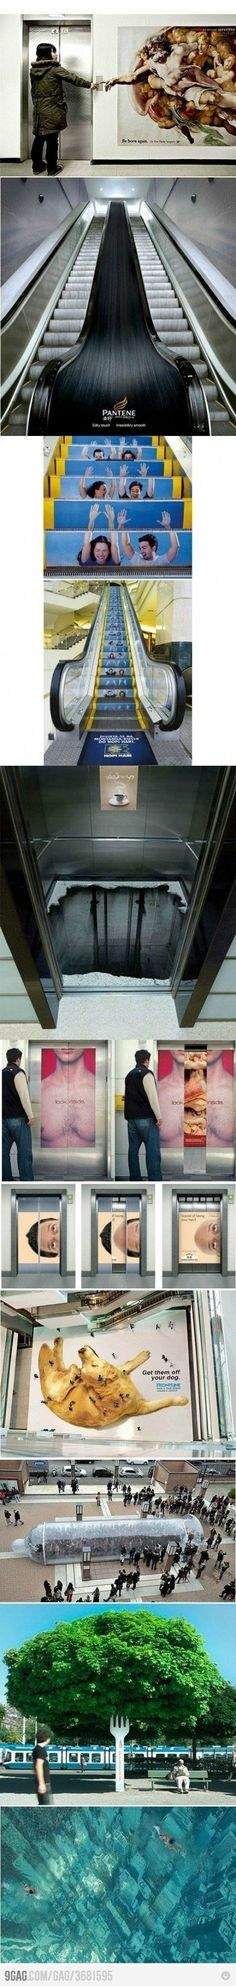 amazing ads Advertising